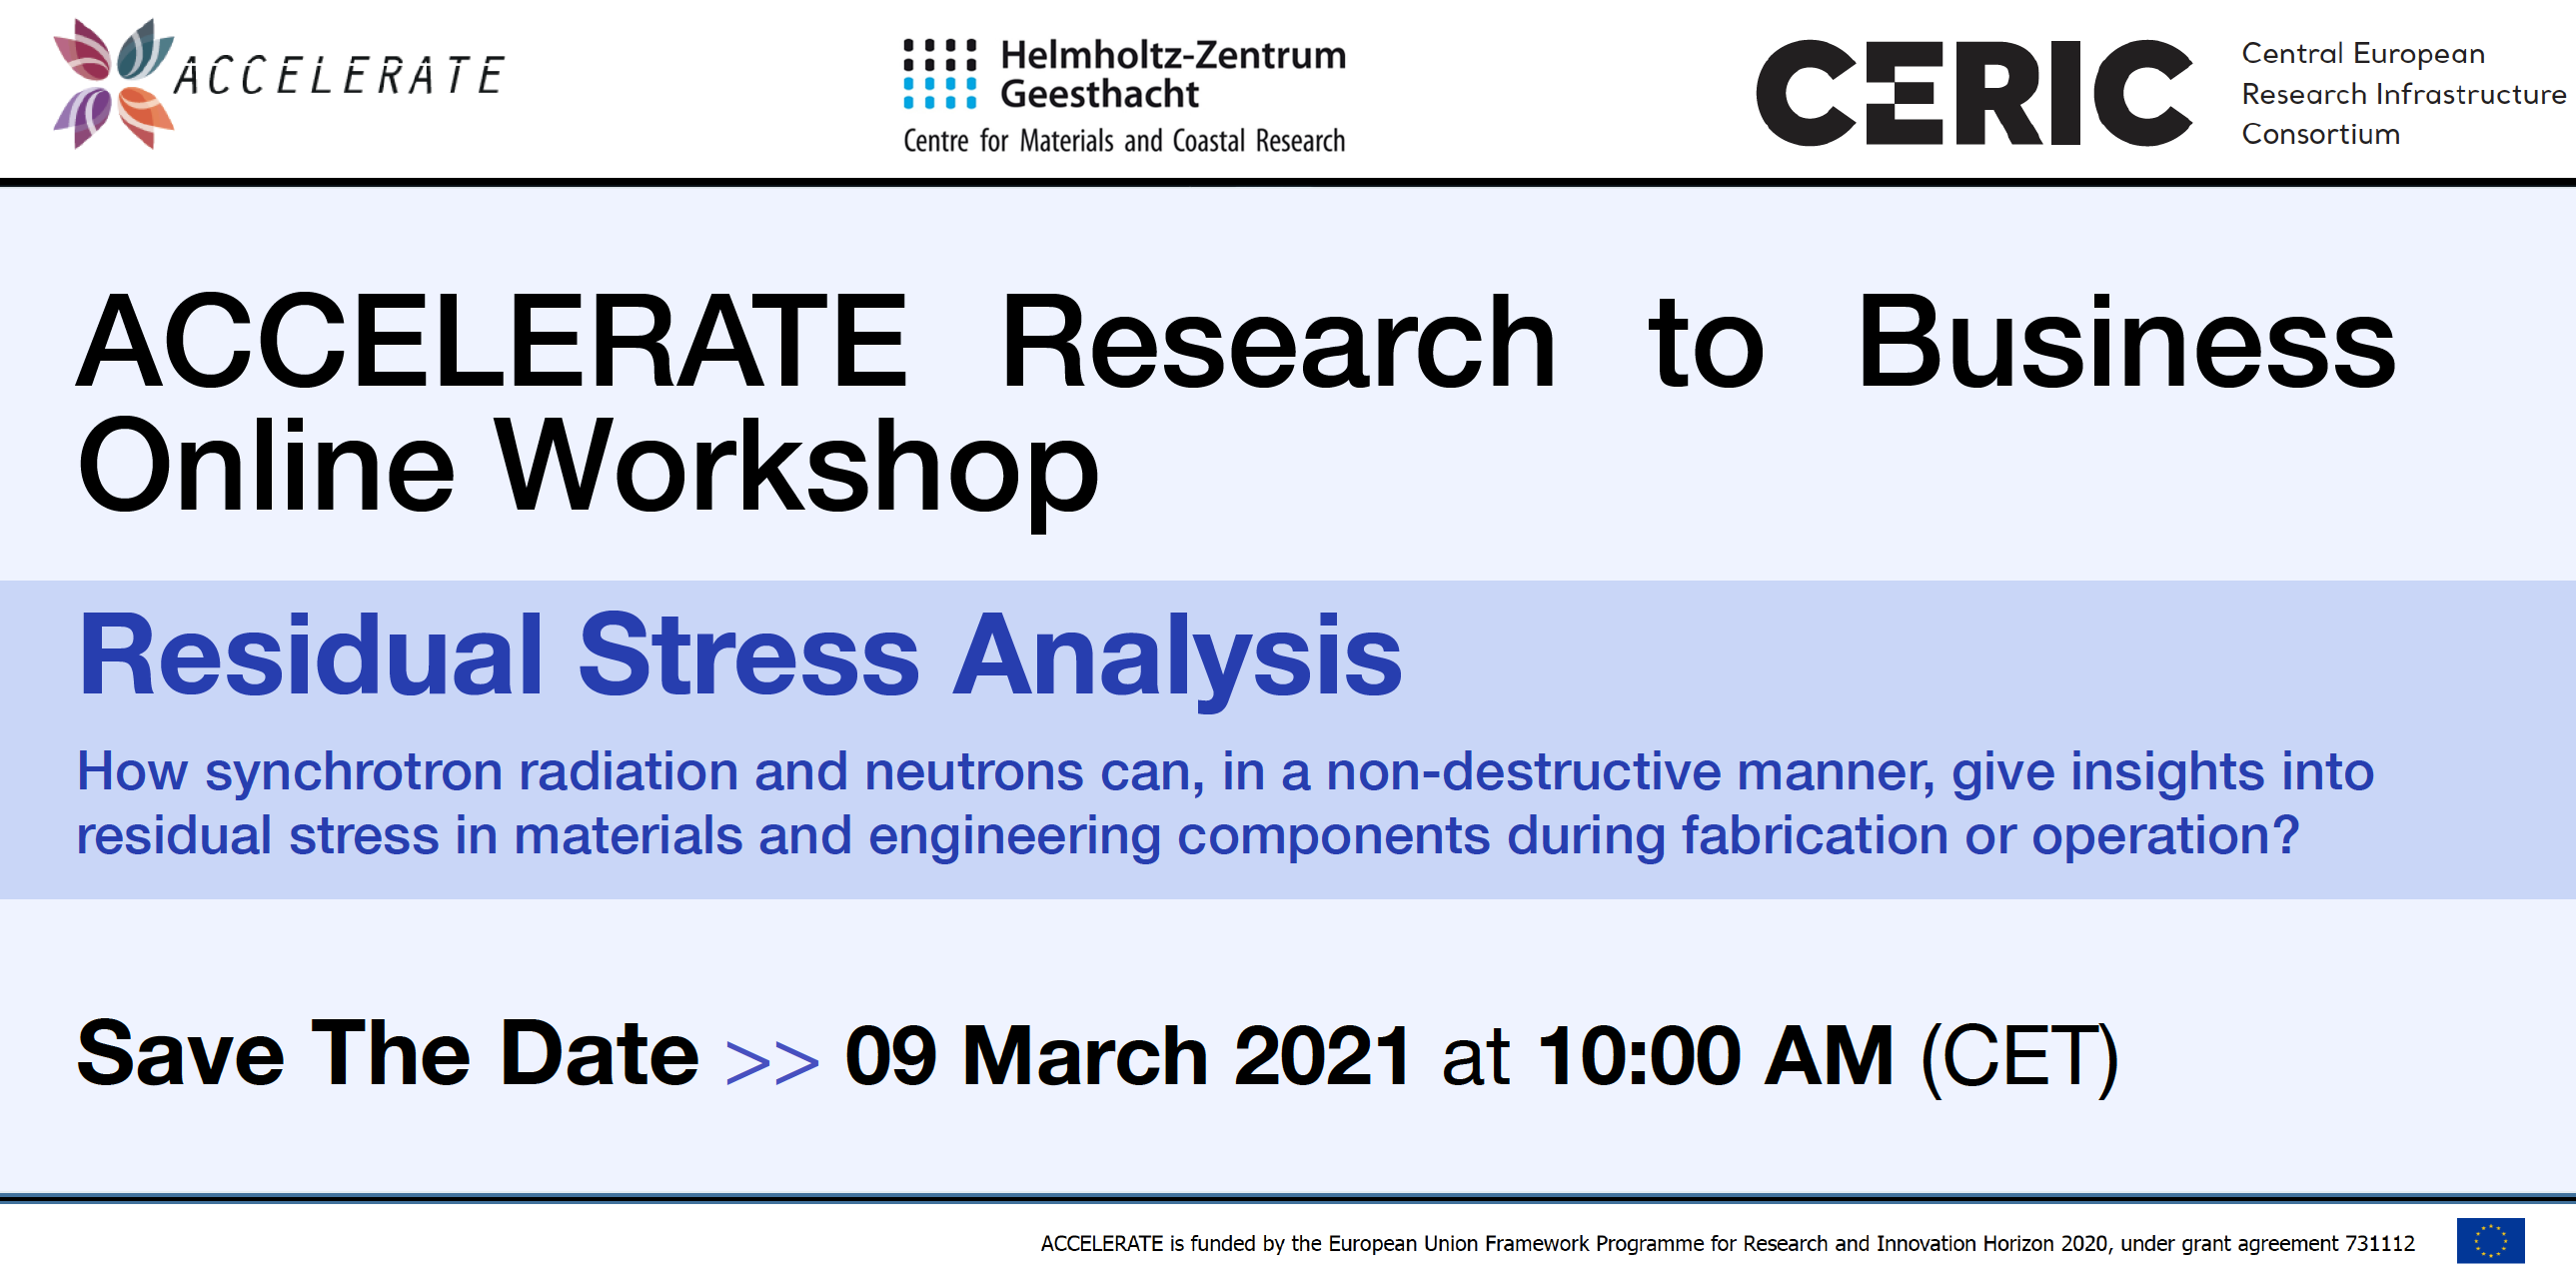 Save the date and Register now► Research2Business Online-Workshop: Residual Stress Analysis